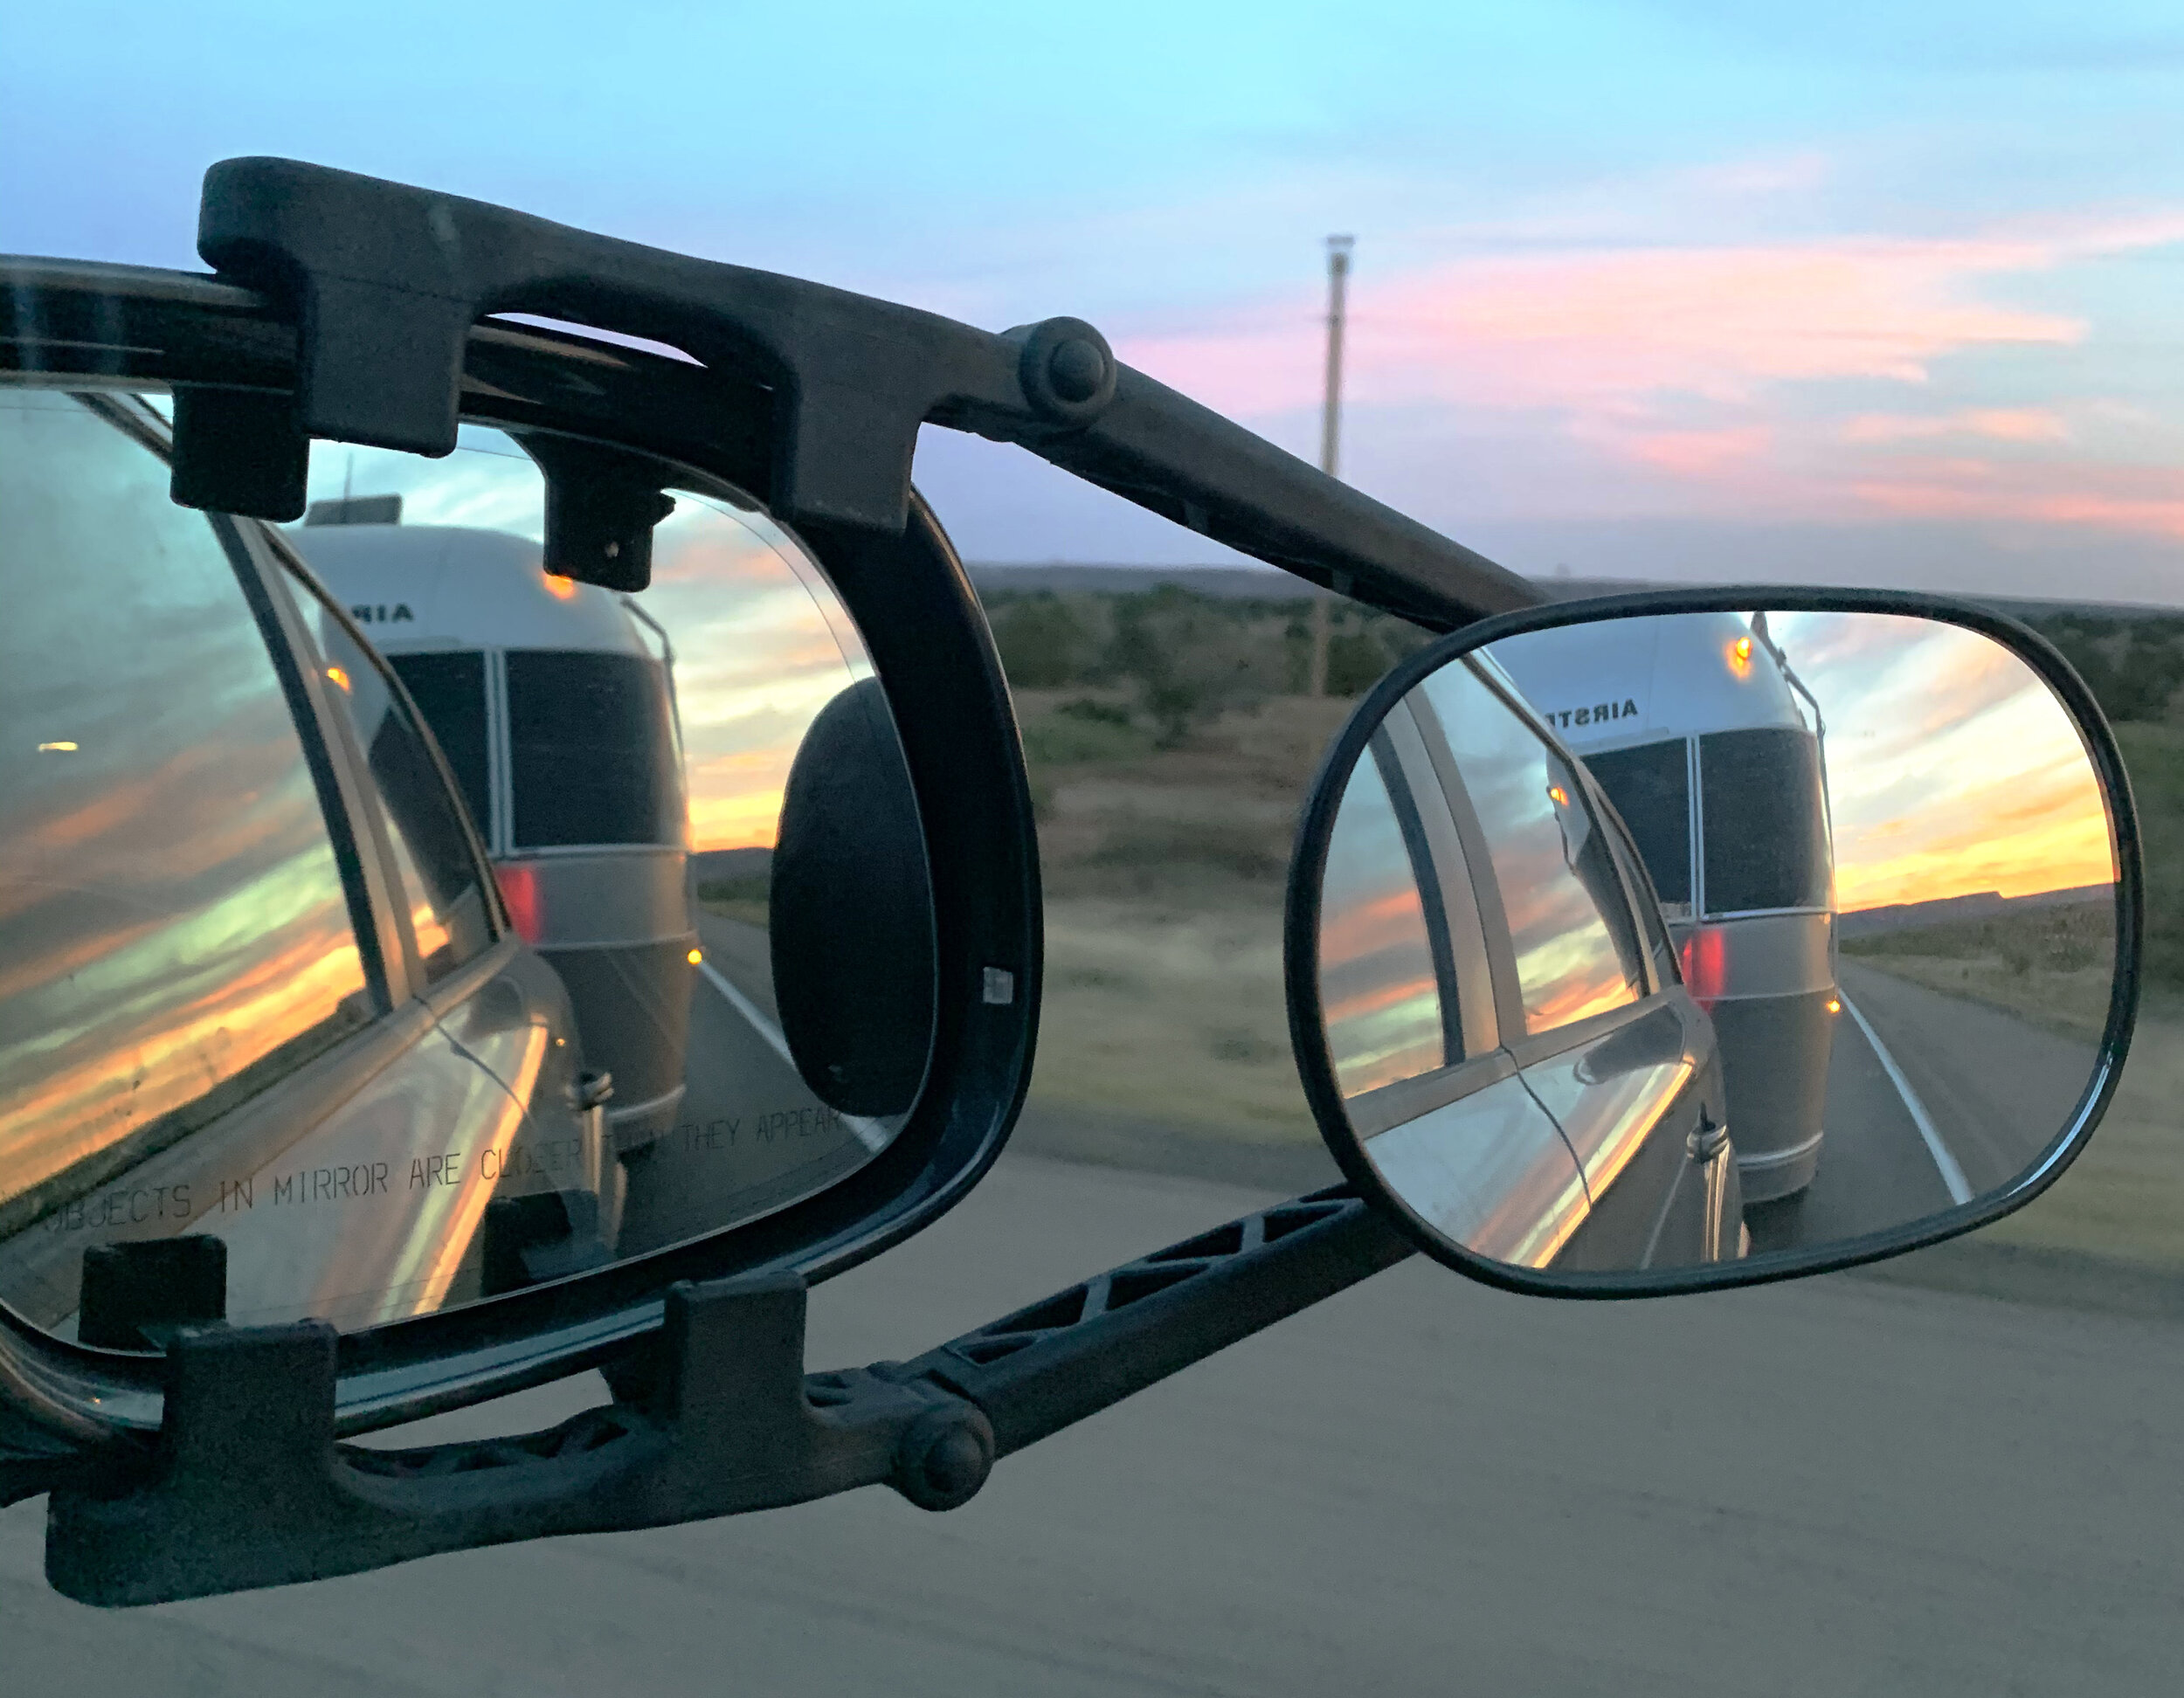 airstream sunset in mirror.jpg